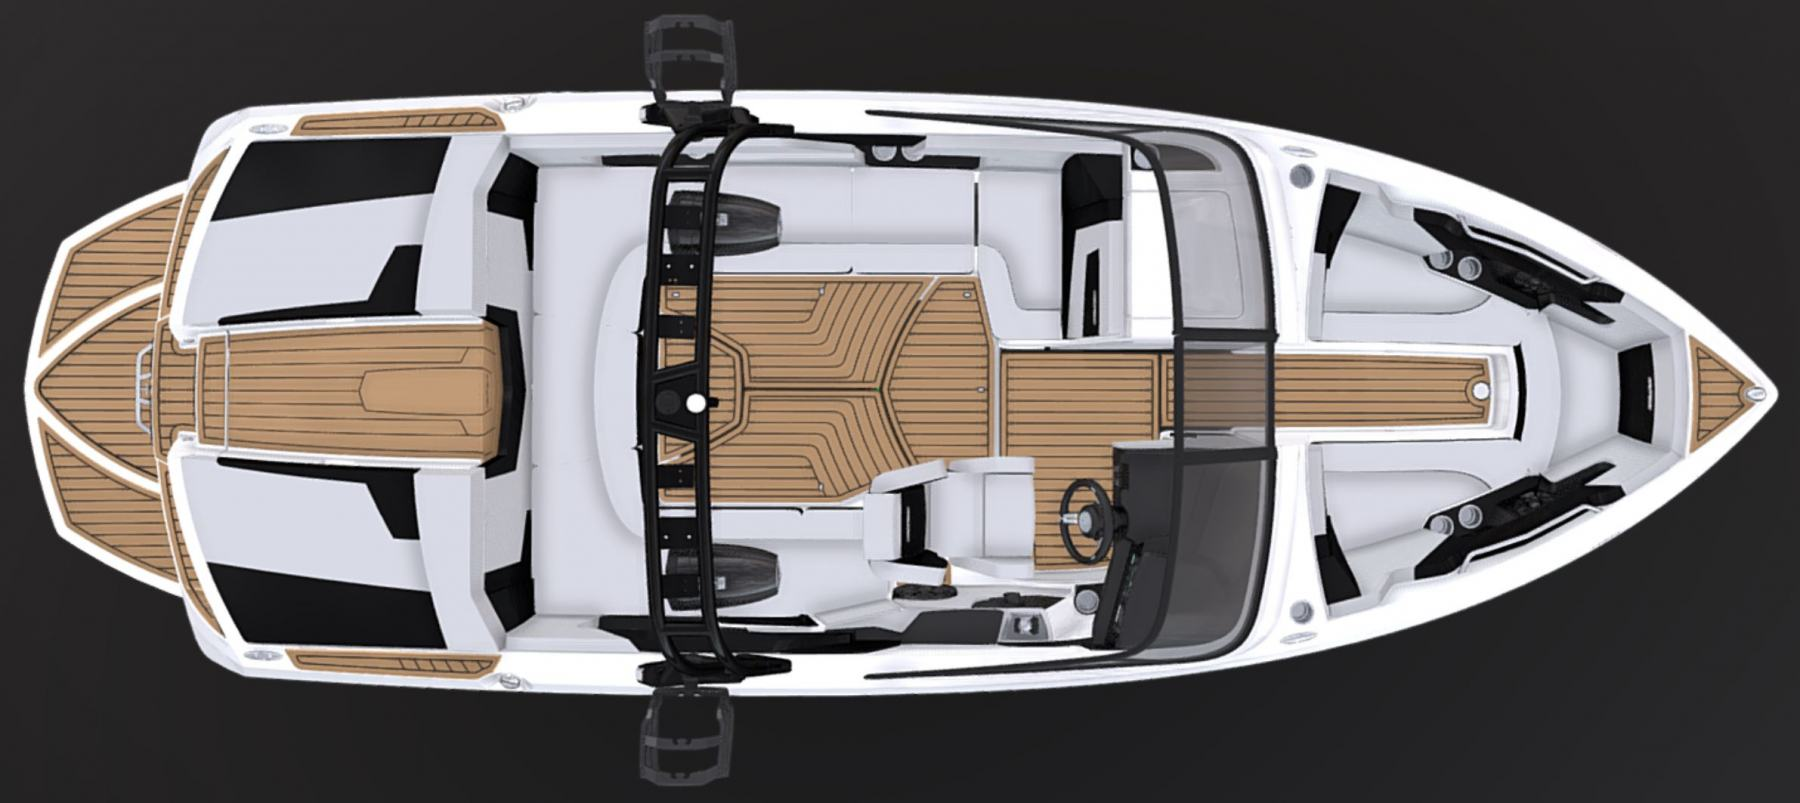 Interior Layout of the 2021 Nautique 230 Wake Boat